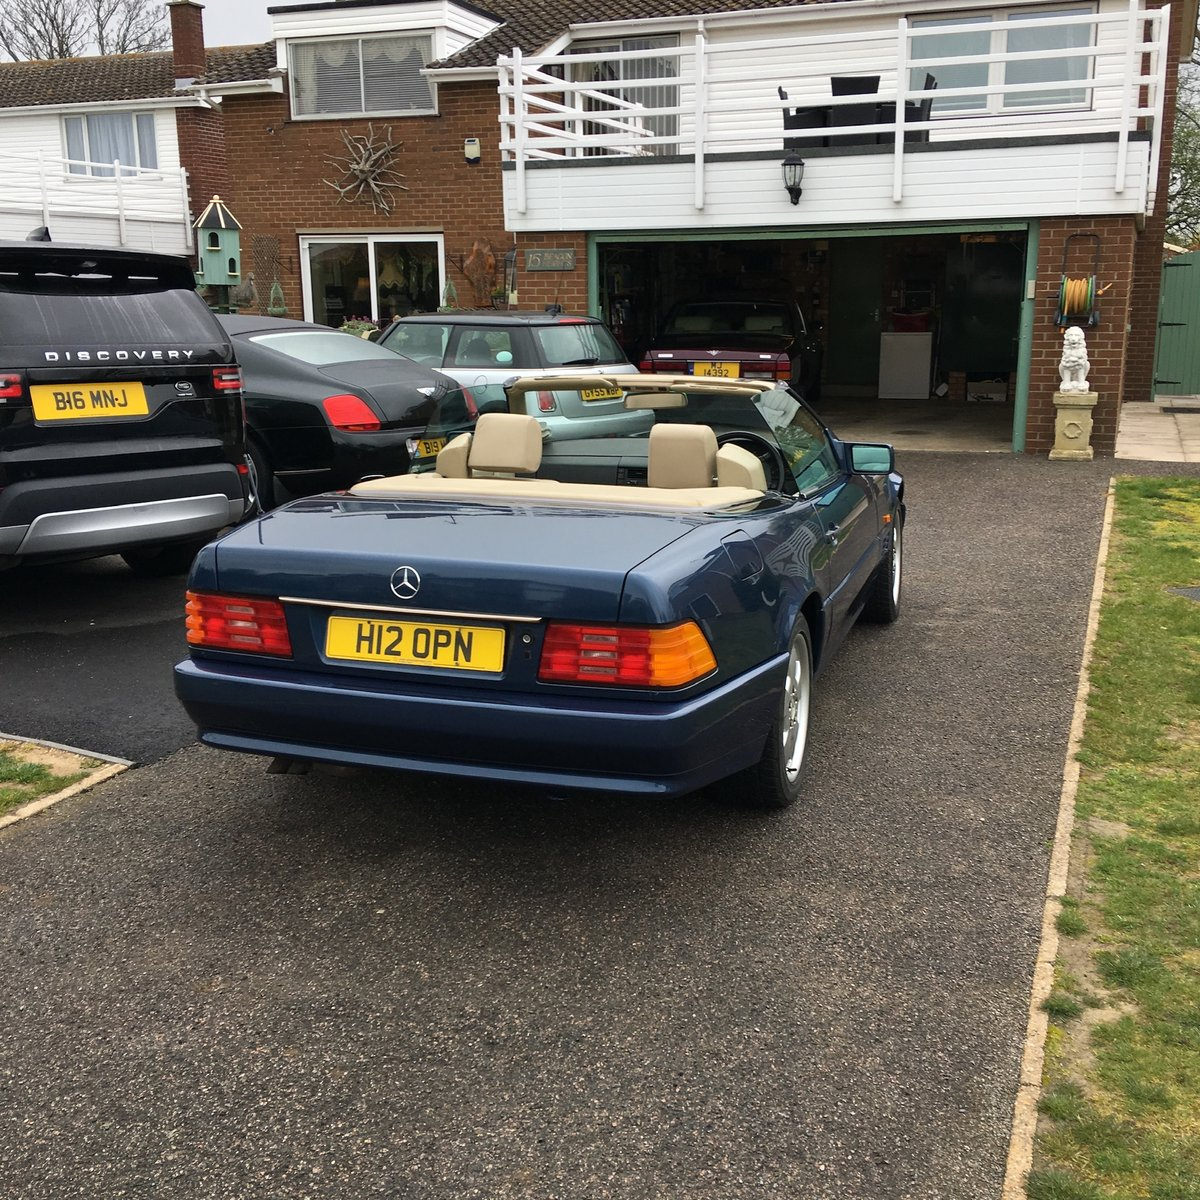 1991 Mercedes 300SL Sports car convertible For Sale (picture 1 of 4)